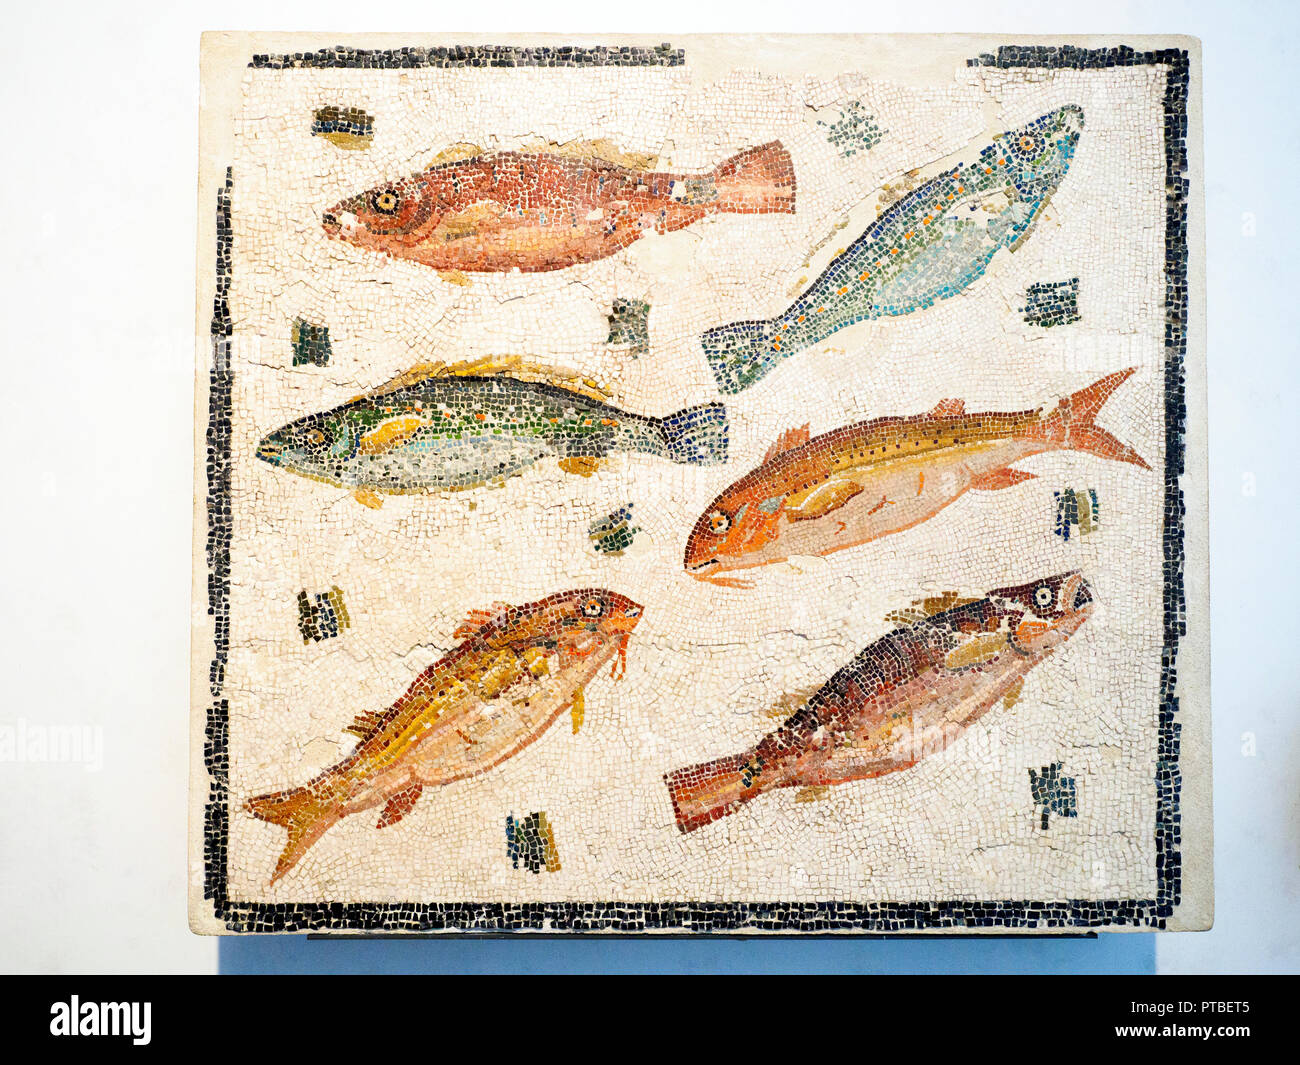 Emblem with fish unknown provenance End II - beginning III century AD -  National Roman Museum in Palazzo Massimo alle Terme - Rome, Italy - Stock Image